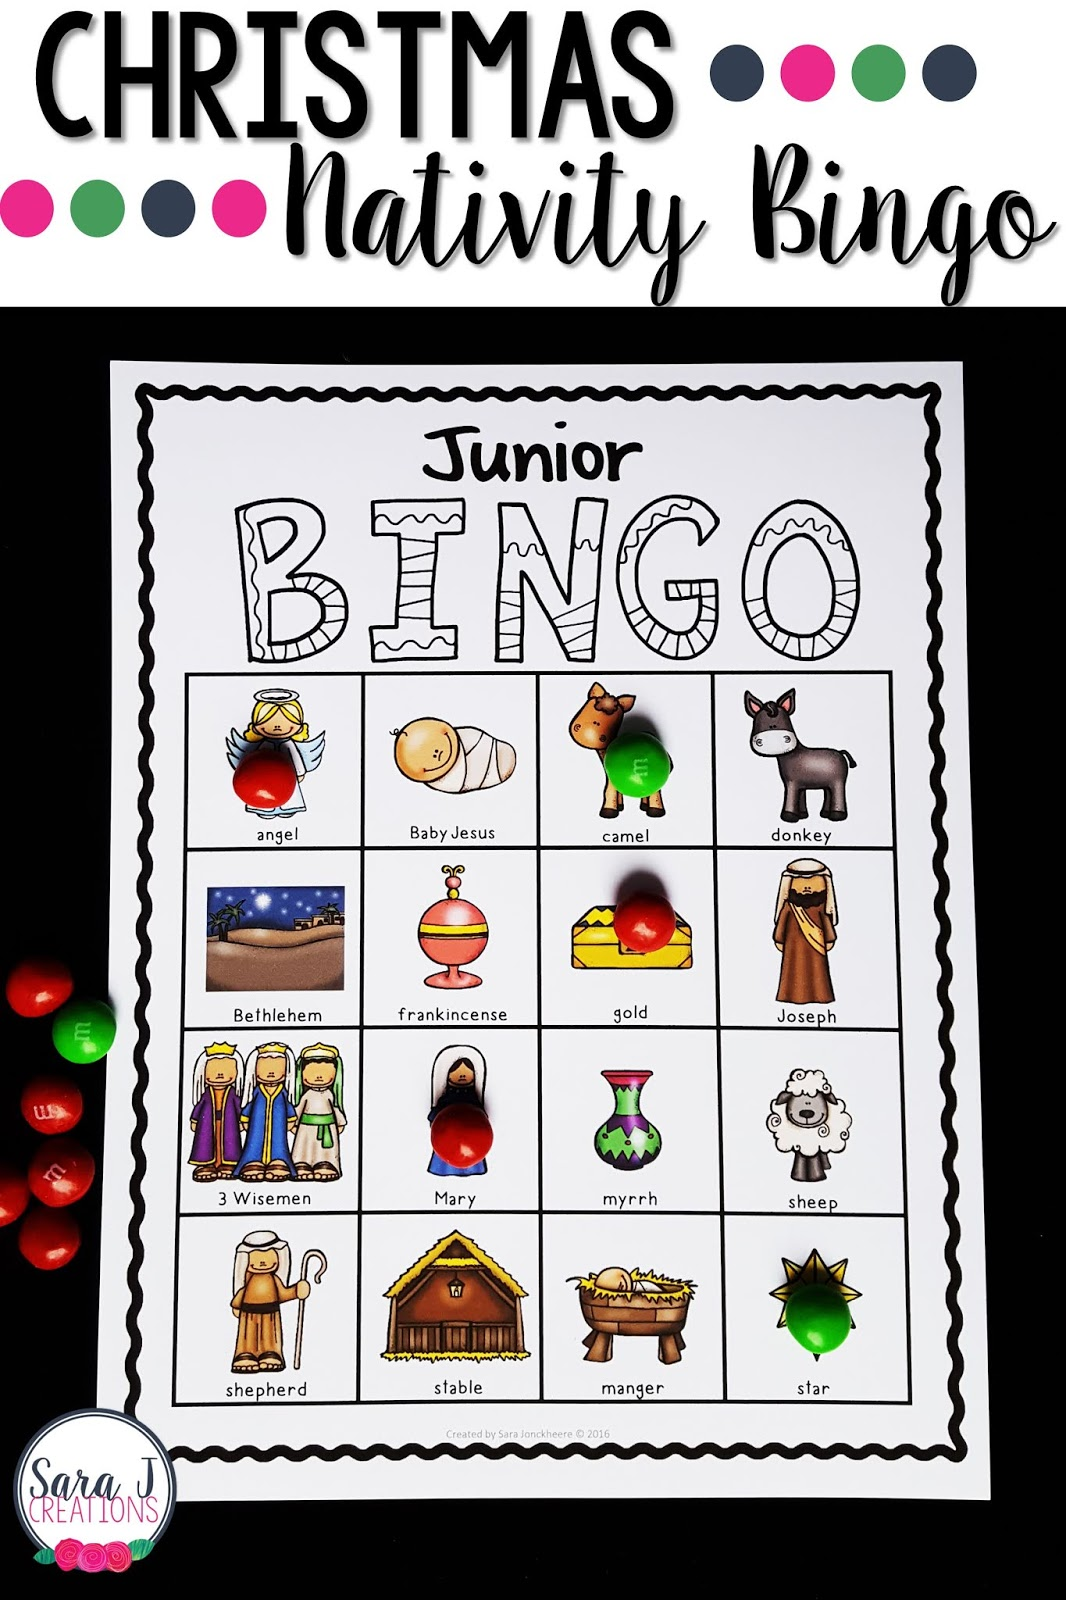 Christmas Nativity Bingo is awesome for kids in a Christian school, Catholic school, Sunday school, church, or homeschool setting. Retell the birth of Jesus with this fun game! Comes in color and black and white plus 30 different boards so you can just print and play and it will be perfect for a large group.